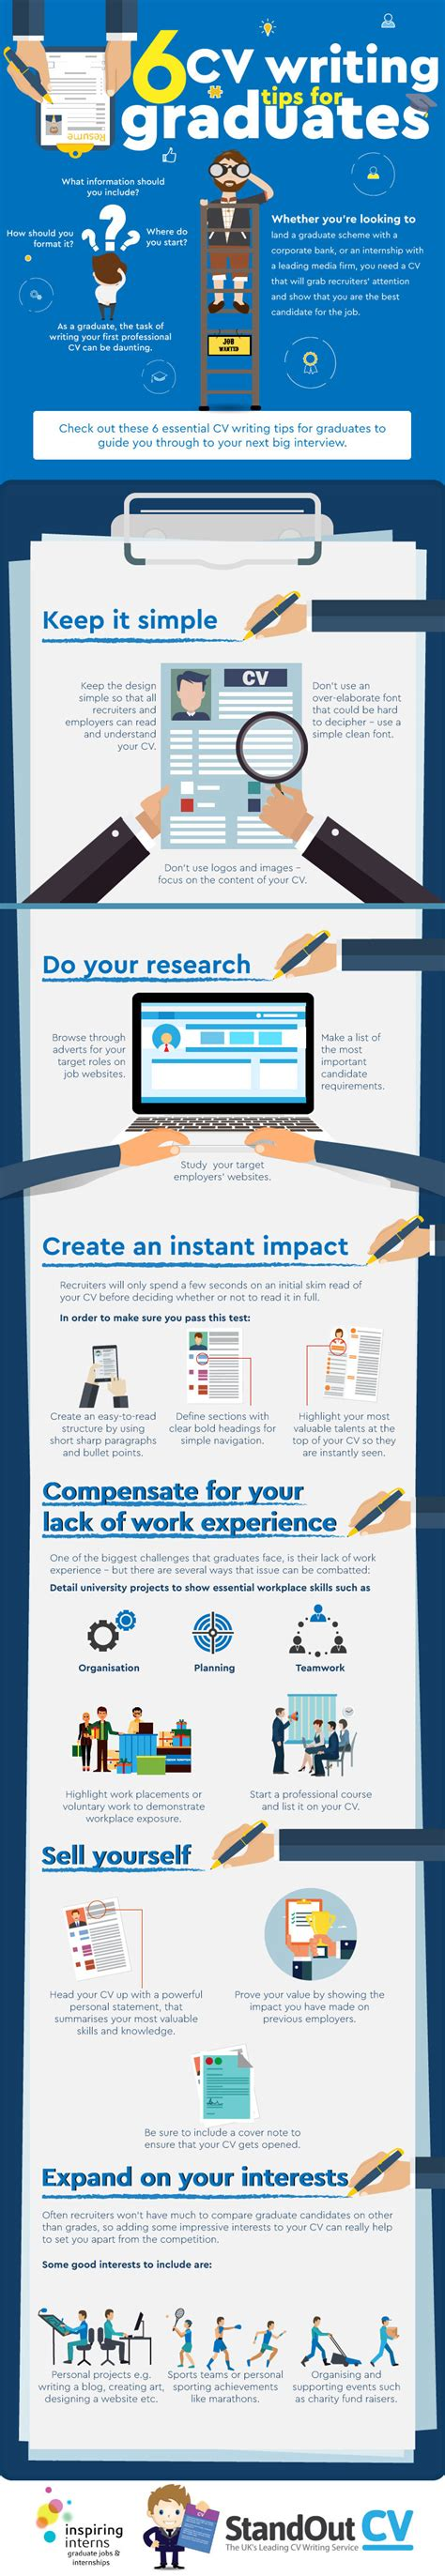 6 cv writing tips for graduates infographic best